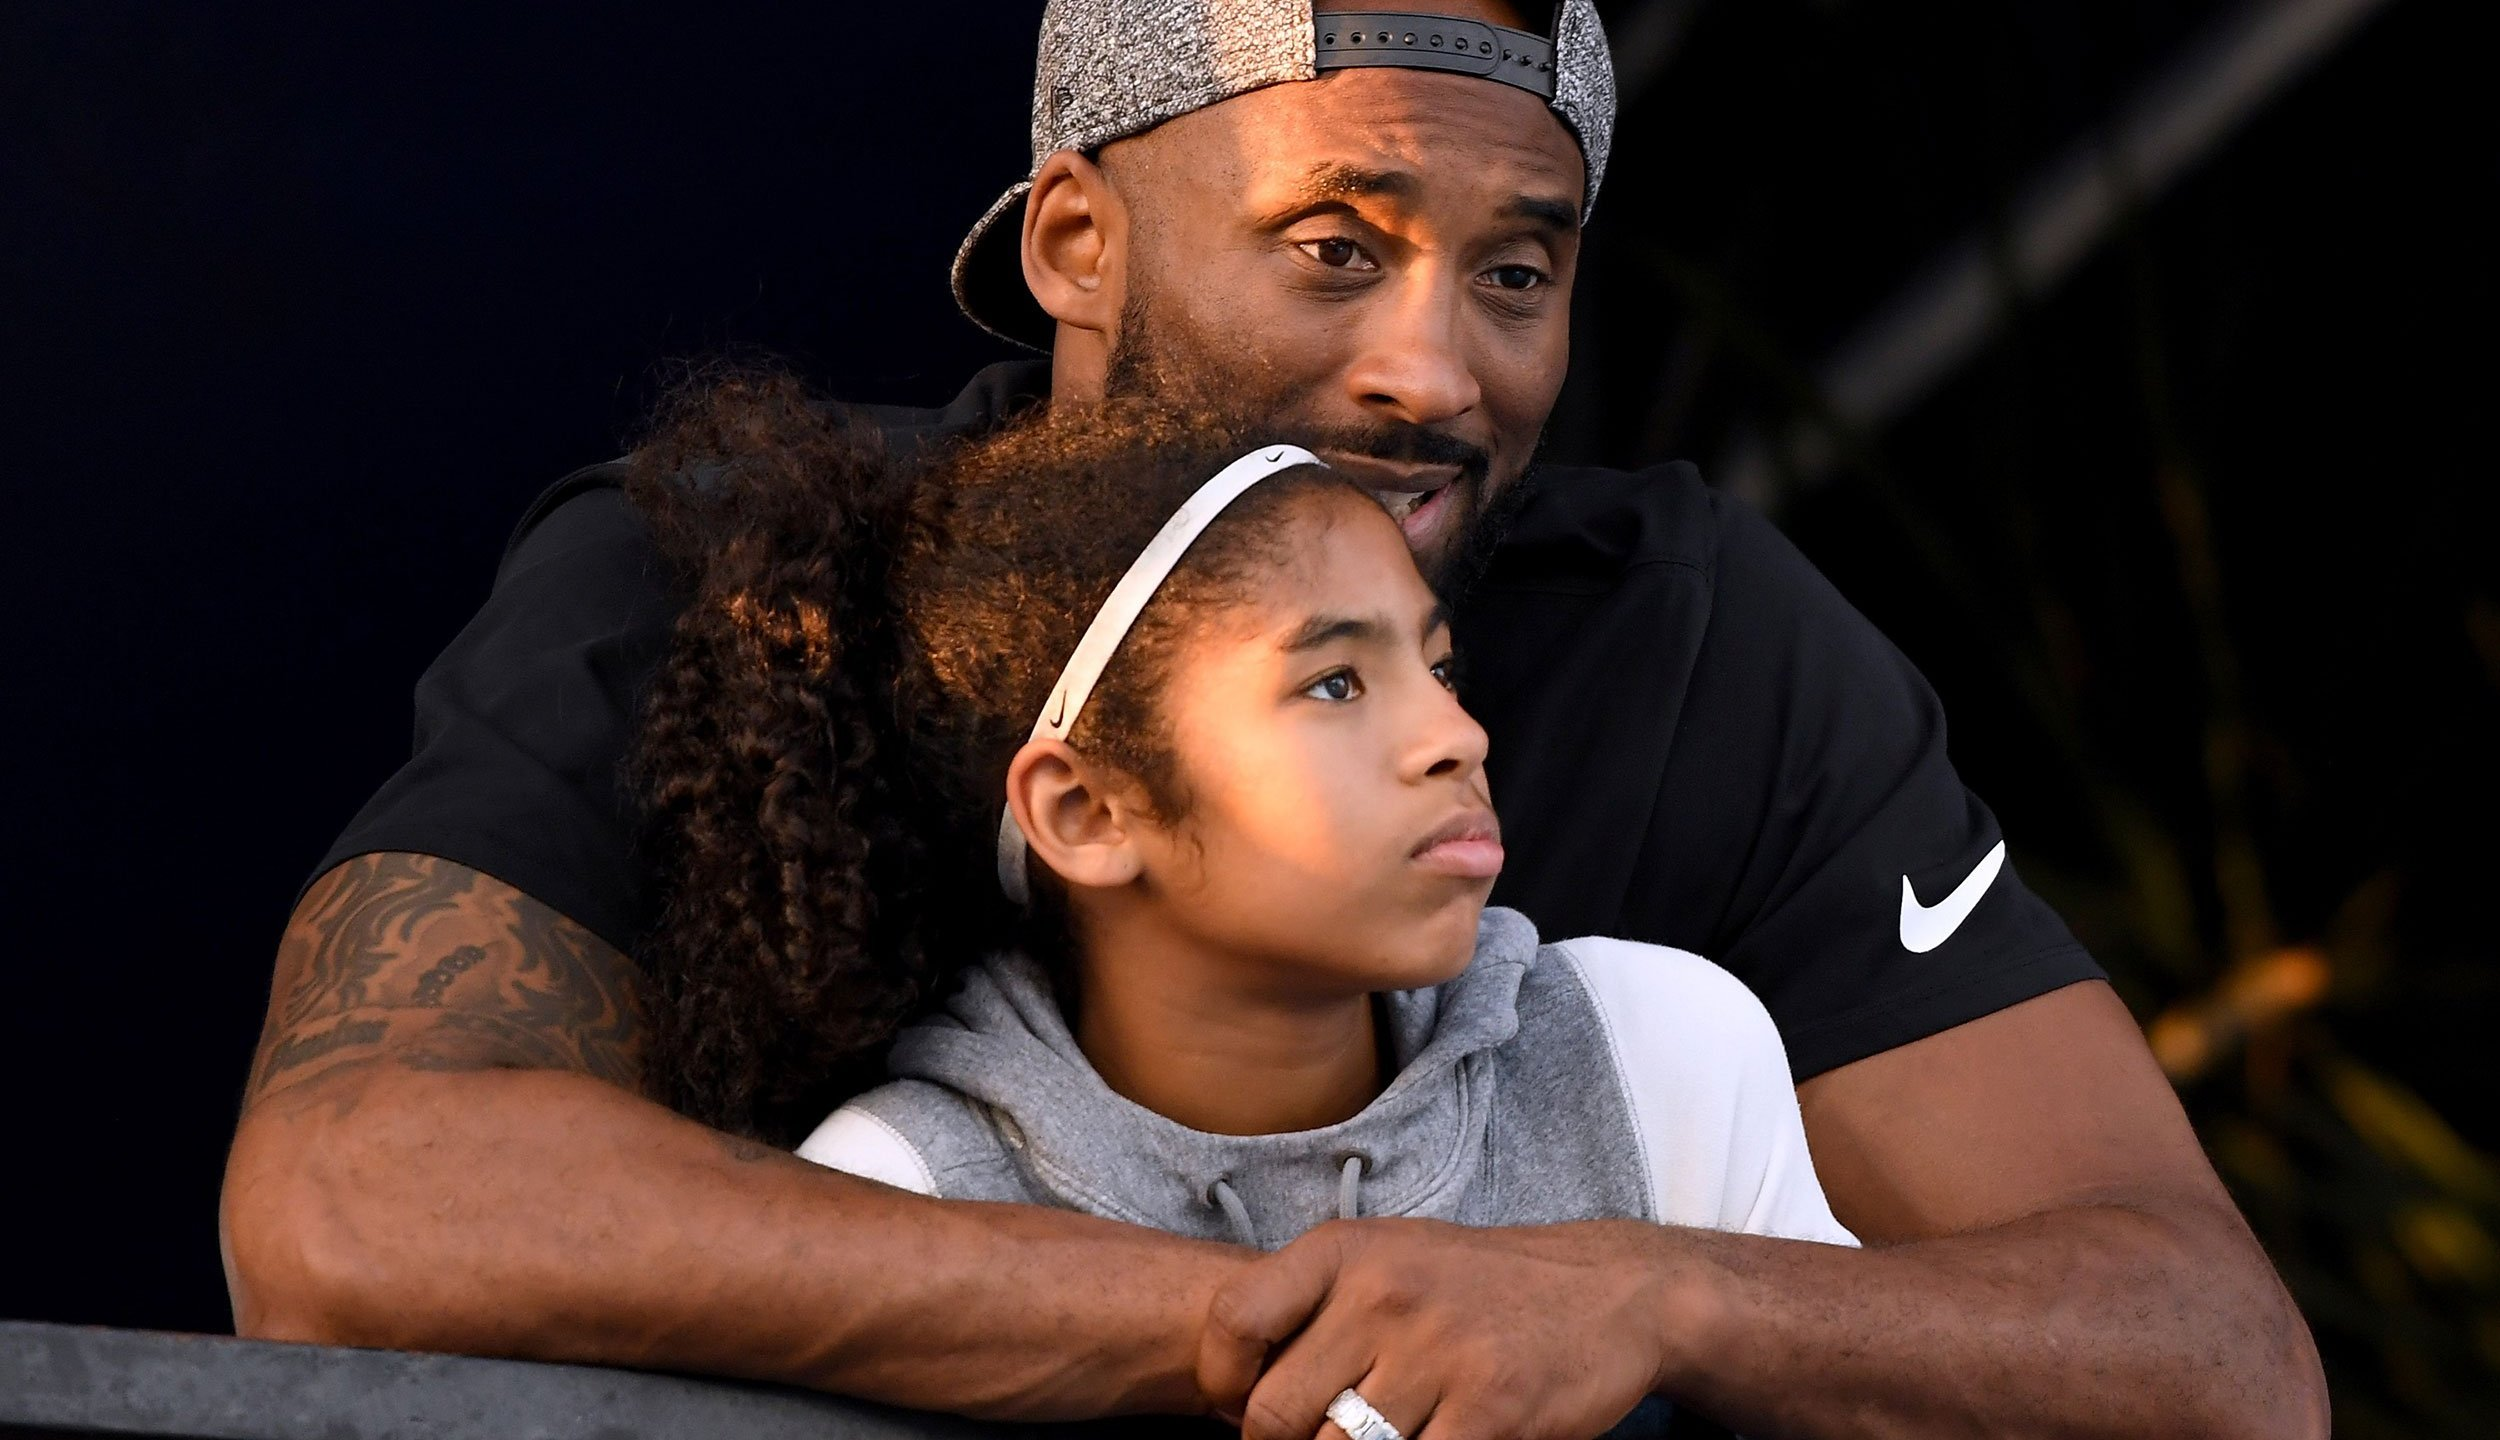 (*to be used with this article only) Kobe Bryant and daughter Gianna Bryant watch during day 2 of the Phillips 66 National Swimming Championships at the Woollett Aquatics Center on July 26, 2018 in Irvine, California. (Credit: Harry How/Getty Images)